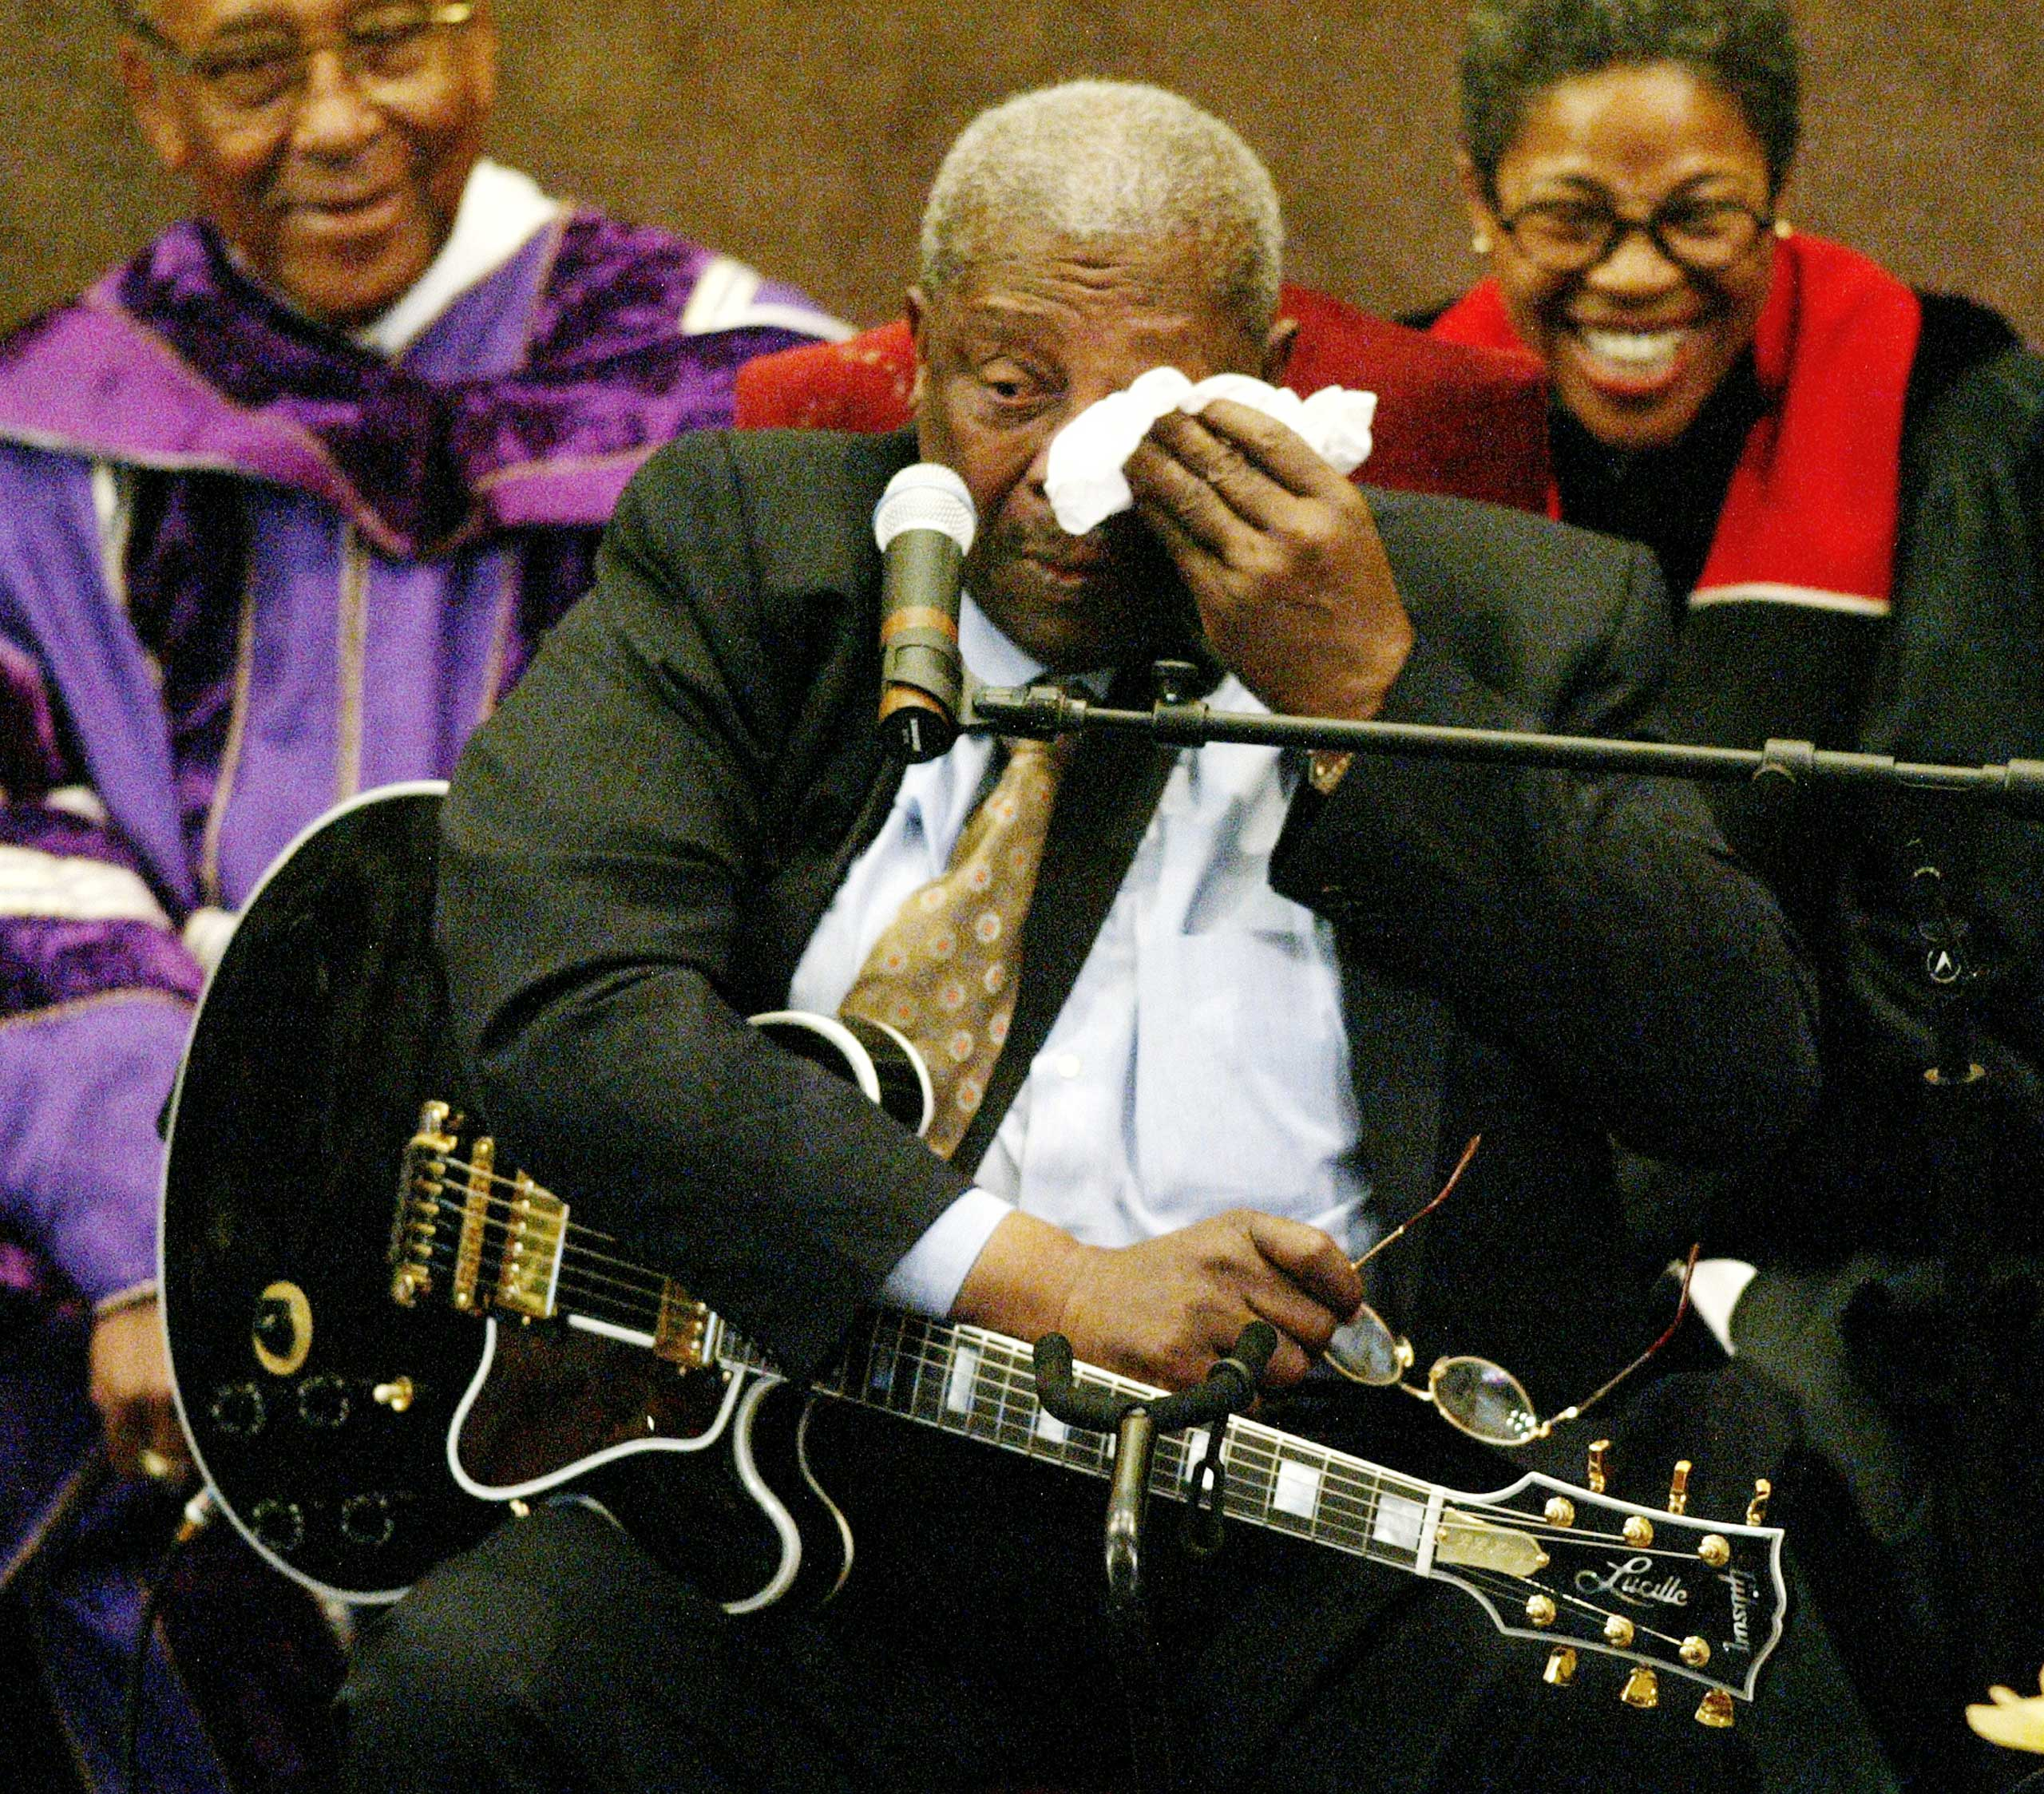 B.B. King performs during the funeral for legendary singer and musician Ray Charles at the First AME Church in Los Angeles on June 18, 2004.